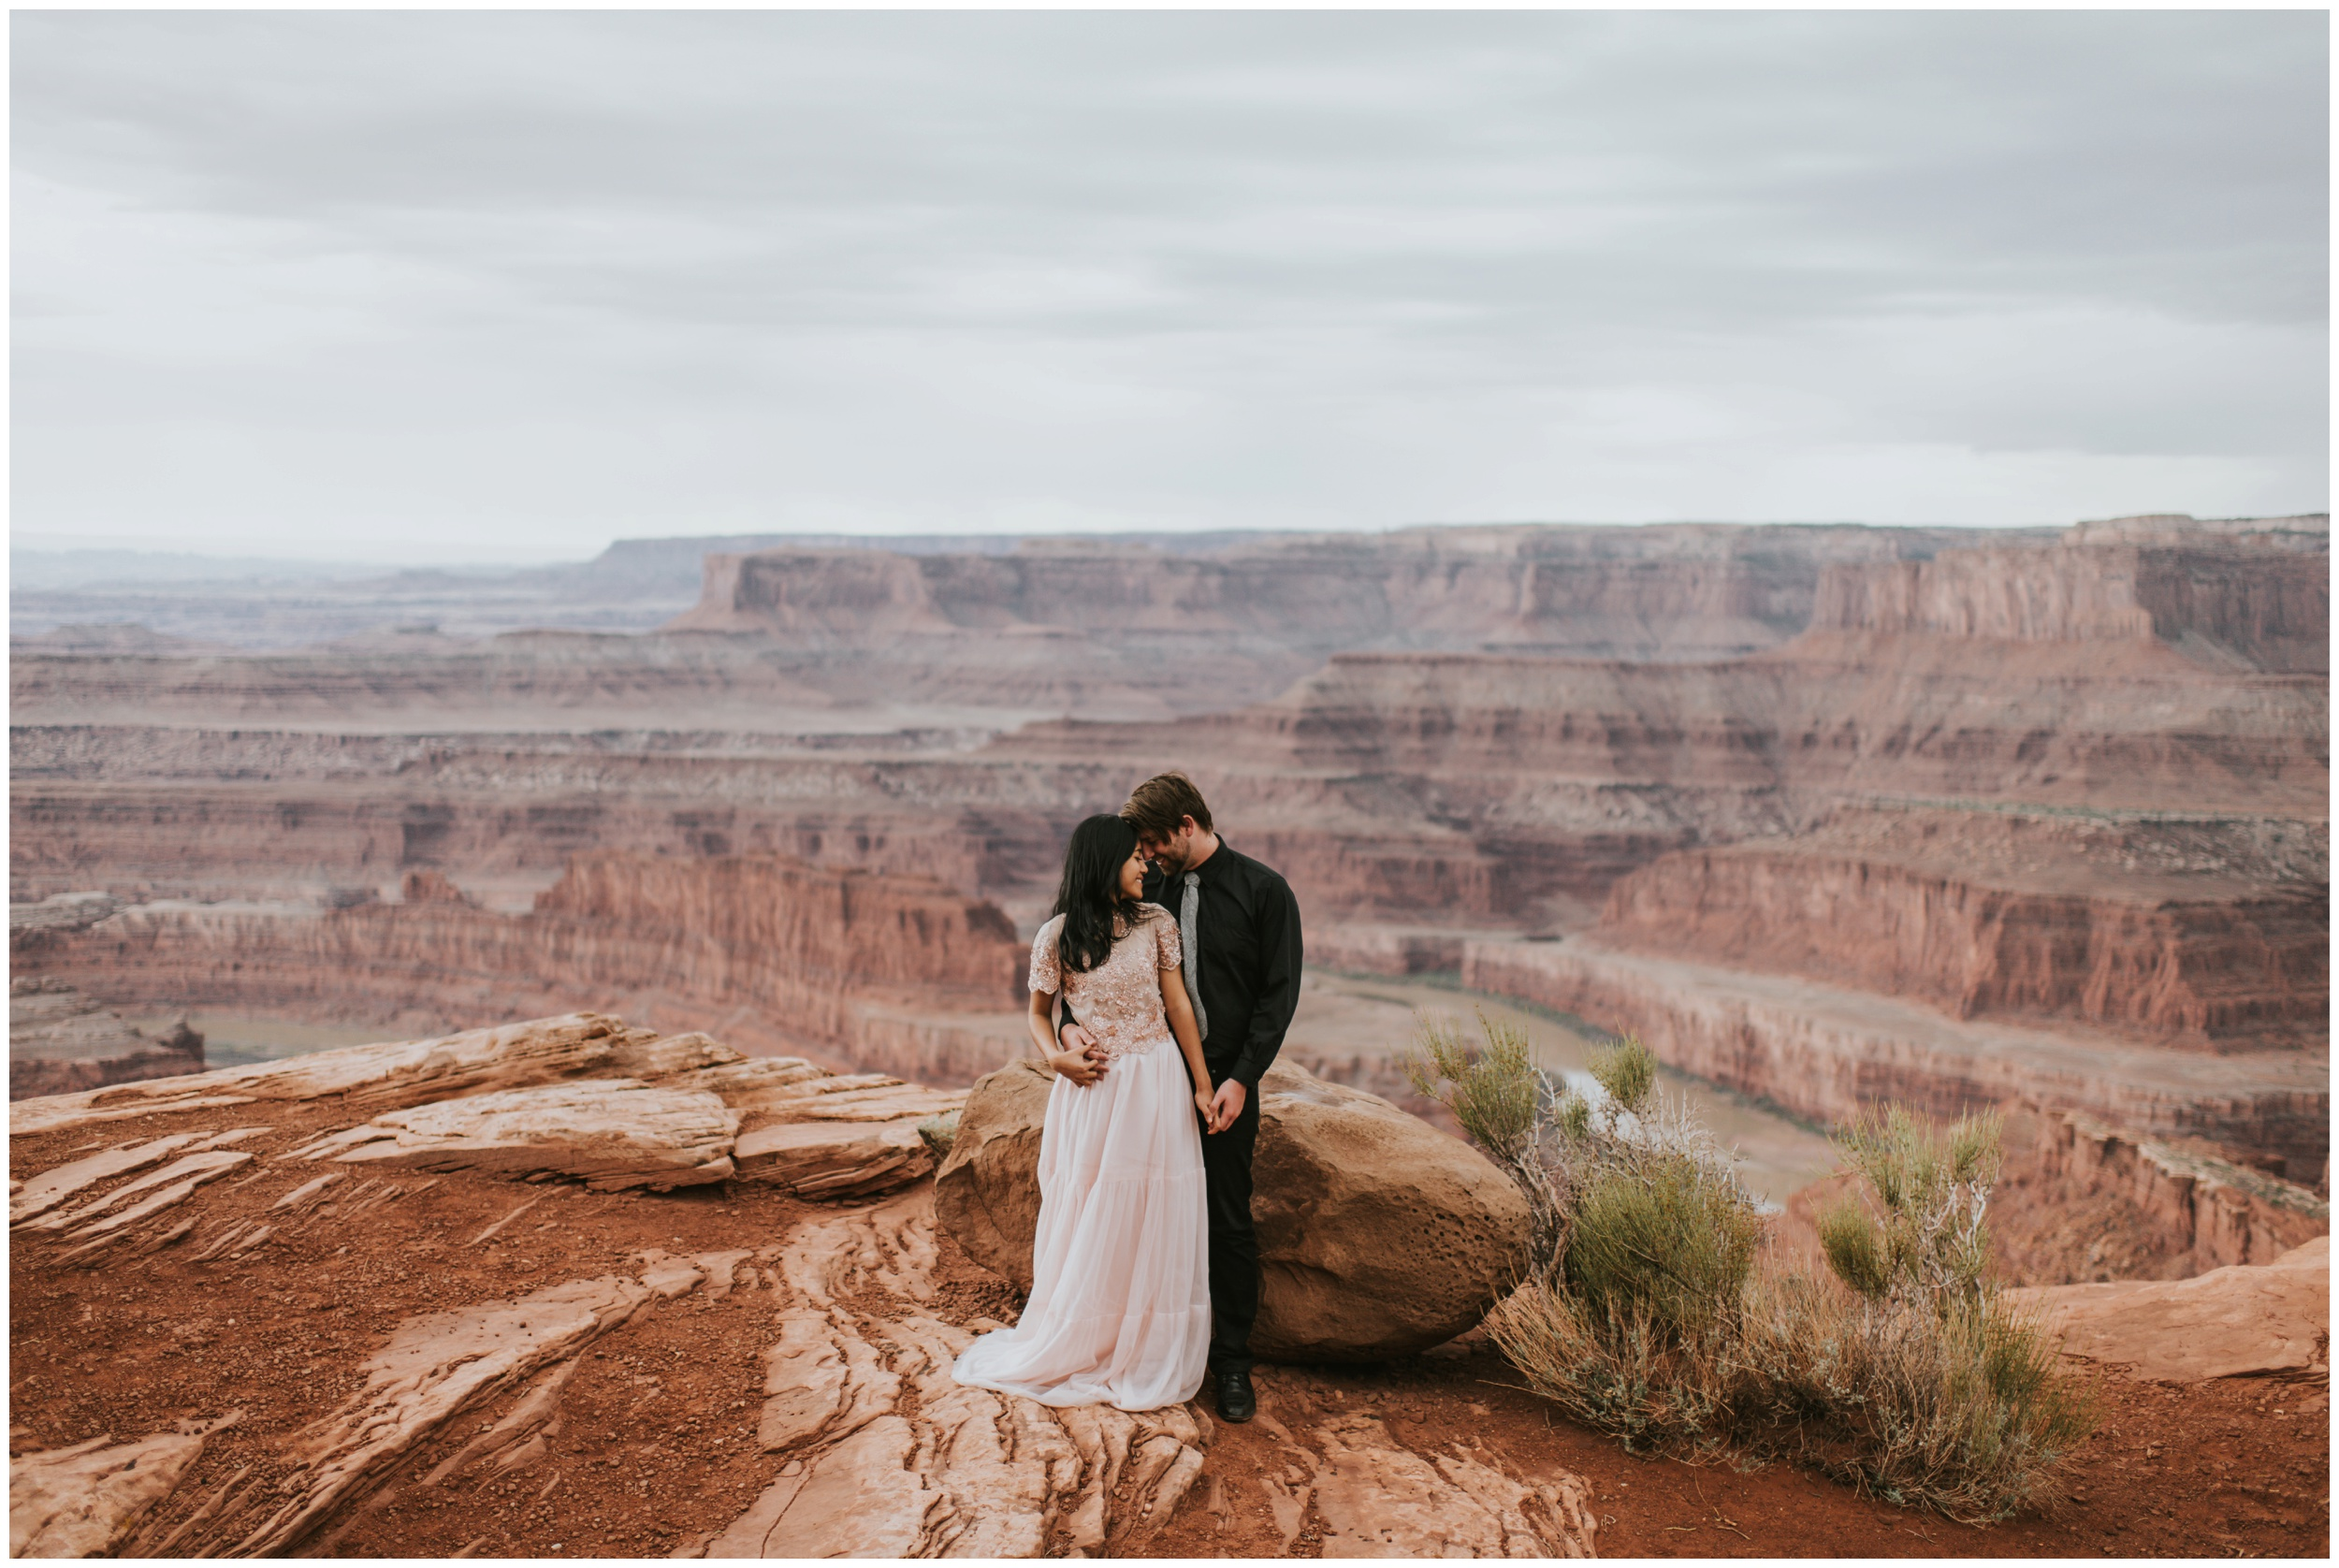 Couple holding each other after eloping at Dead Horse Point State Park Overlook | Elopement Photographer www.riversandroadsphotography.com